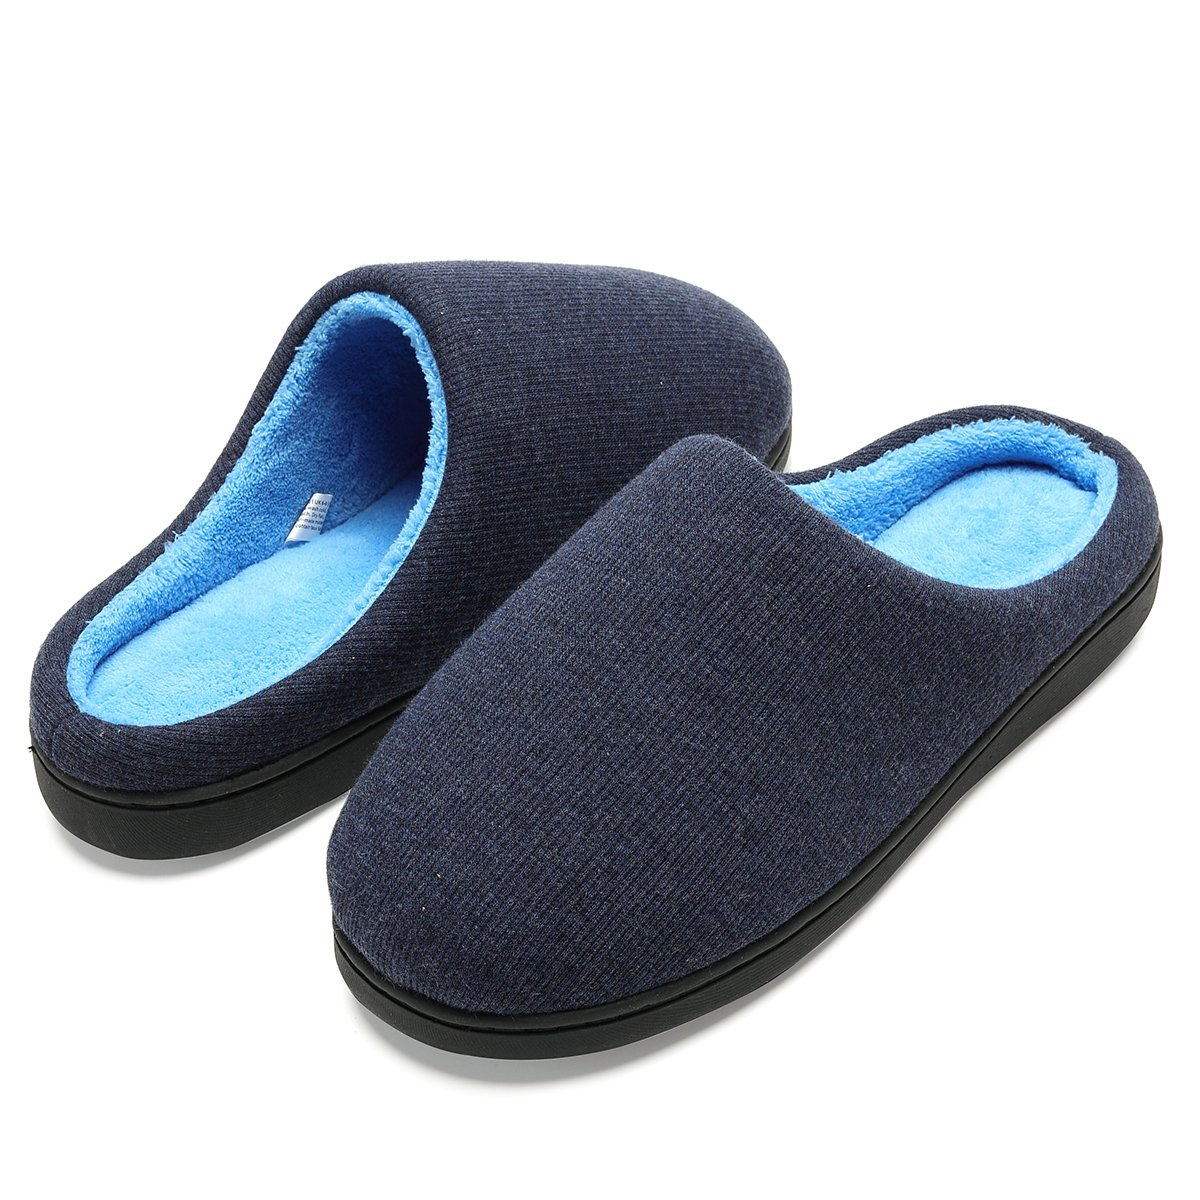 Men's Classic Memory Foam Plush House Slippers, Spring Summer Breathable Indoor/Outdoor Shoes